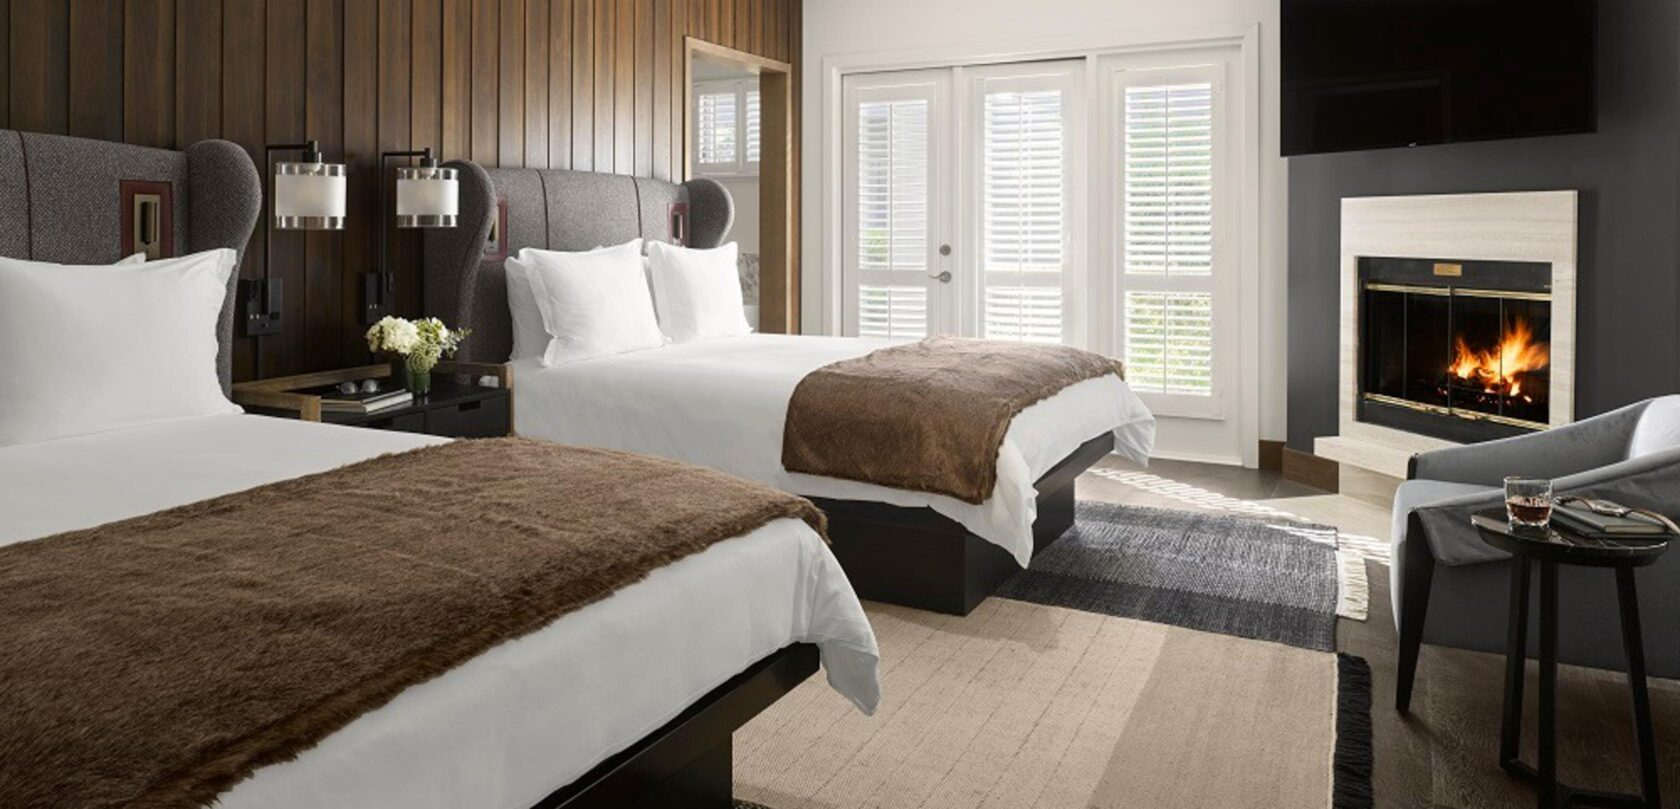 two beds in a hotel villagio bedroom